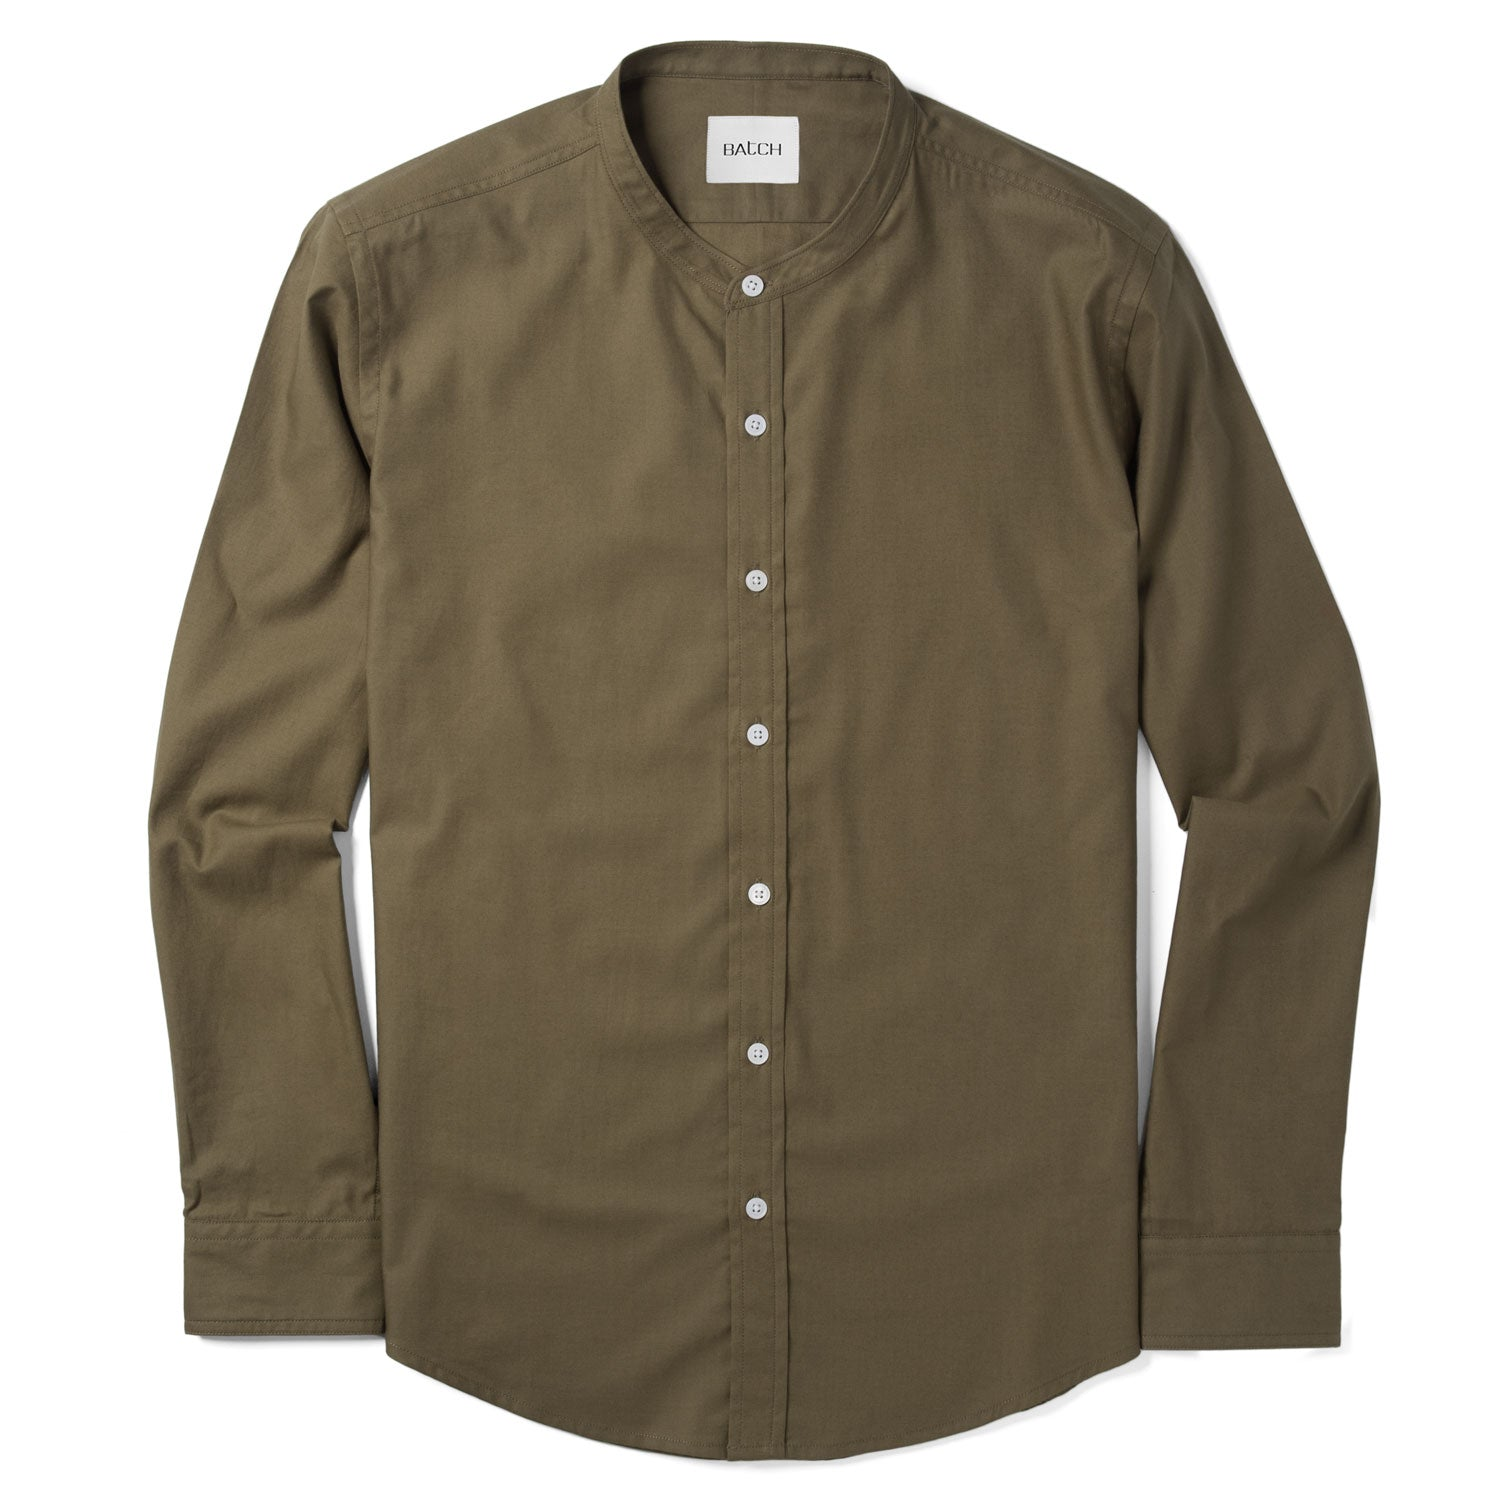 Essential Band-Collar Casual Shirt - WB Fatigue Green Mercerized Cotton